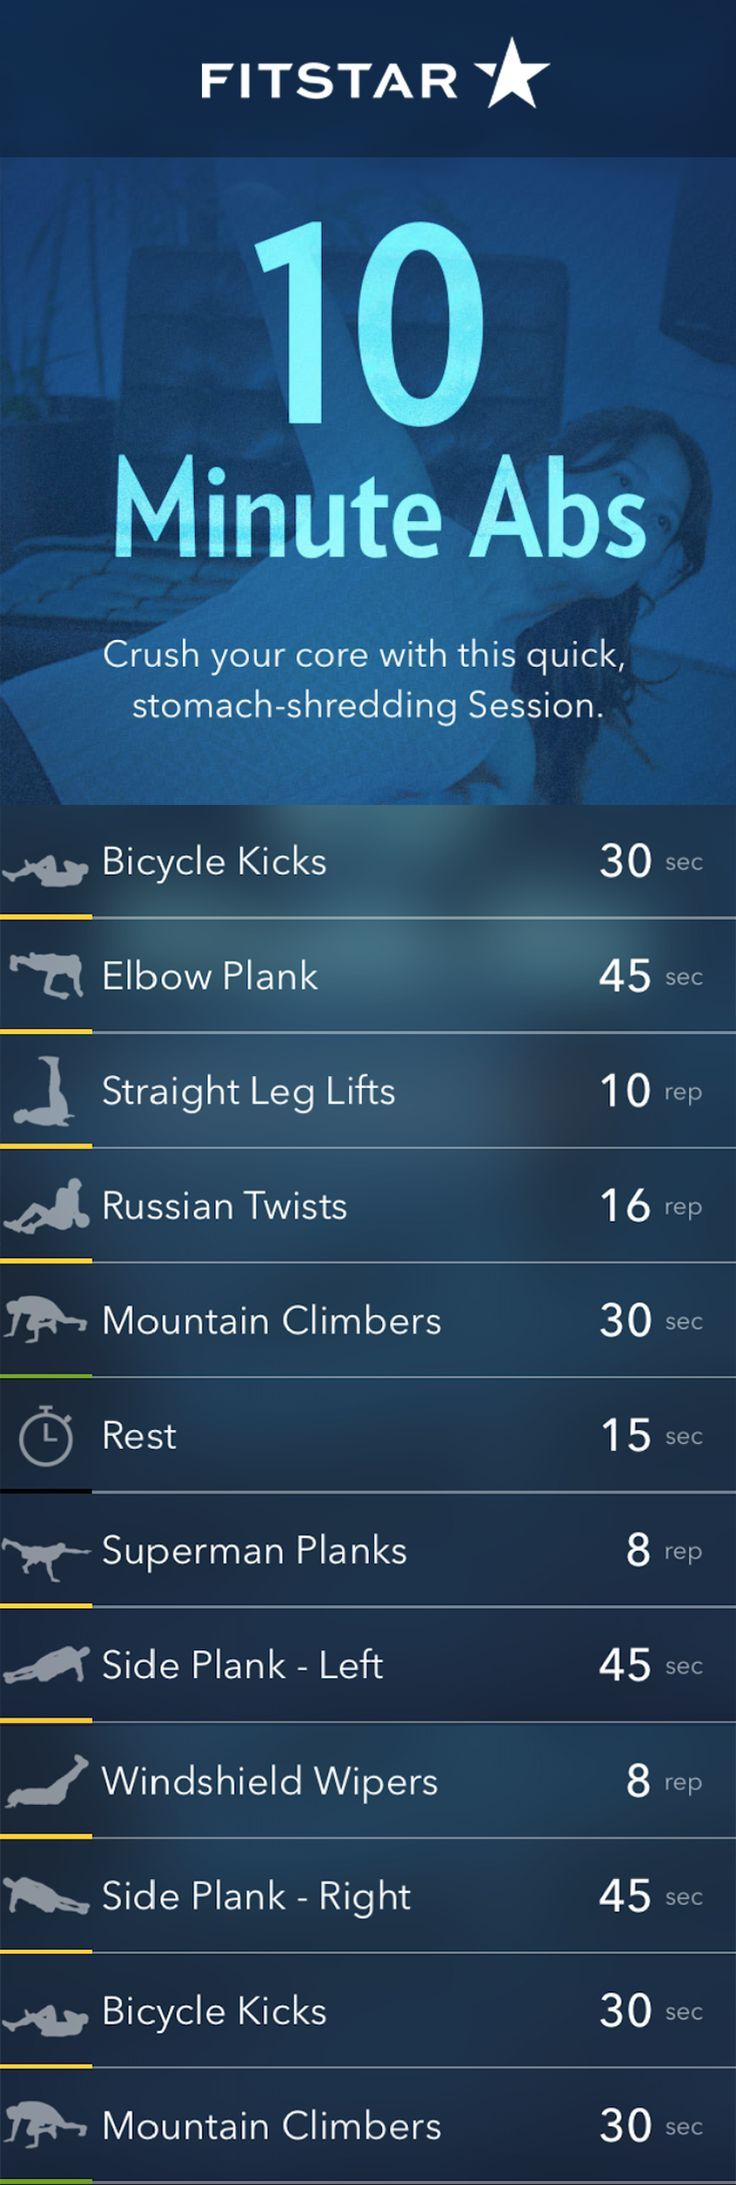 A 10 Minute Ab Workout from Fitstar to Rock Your Core